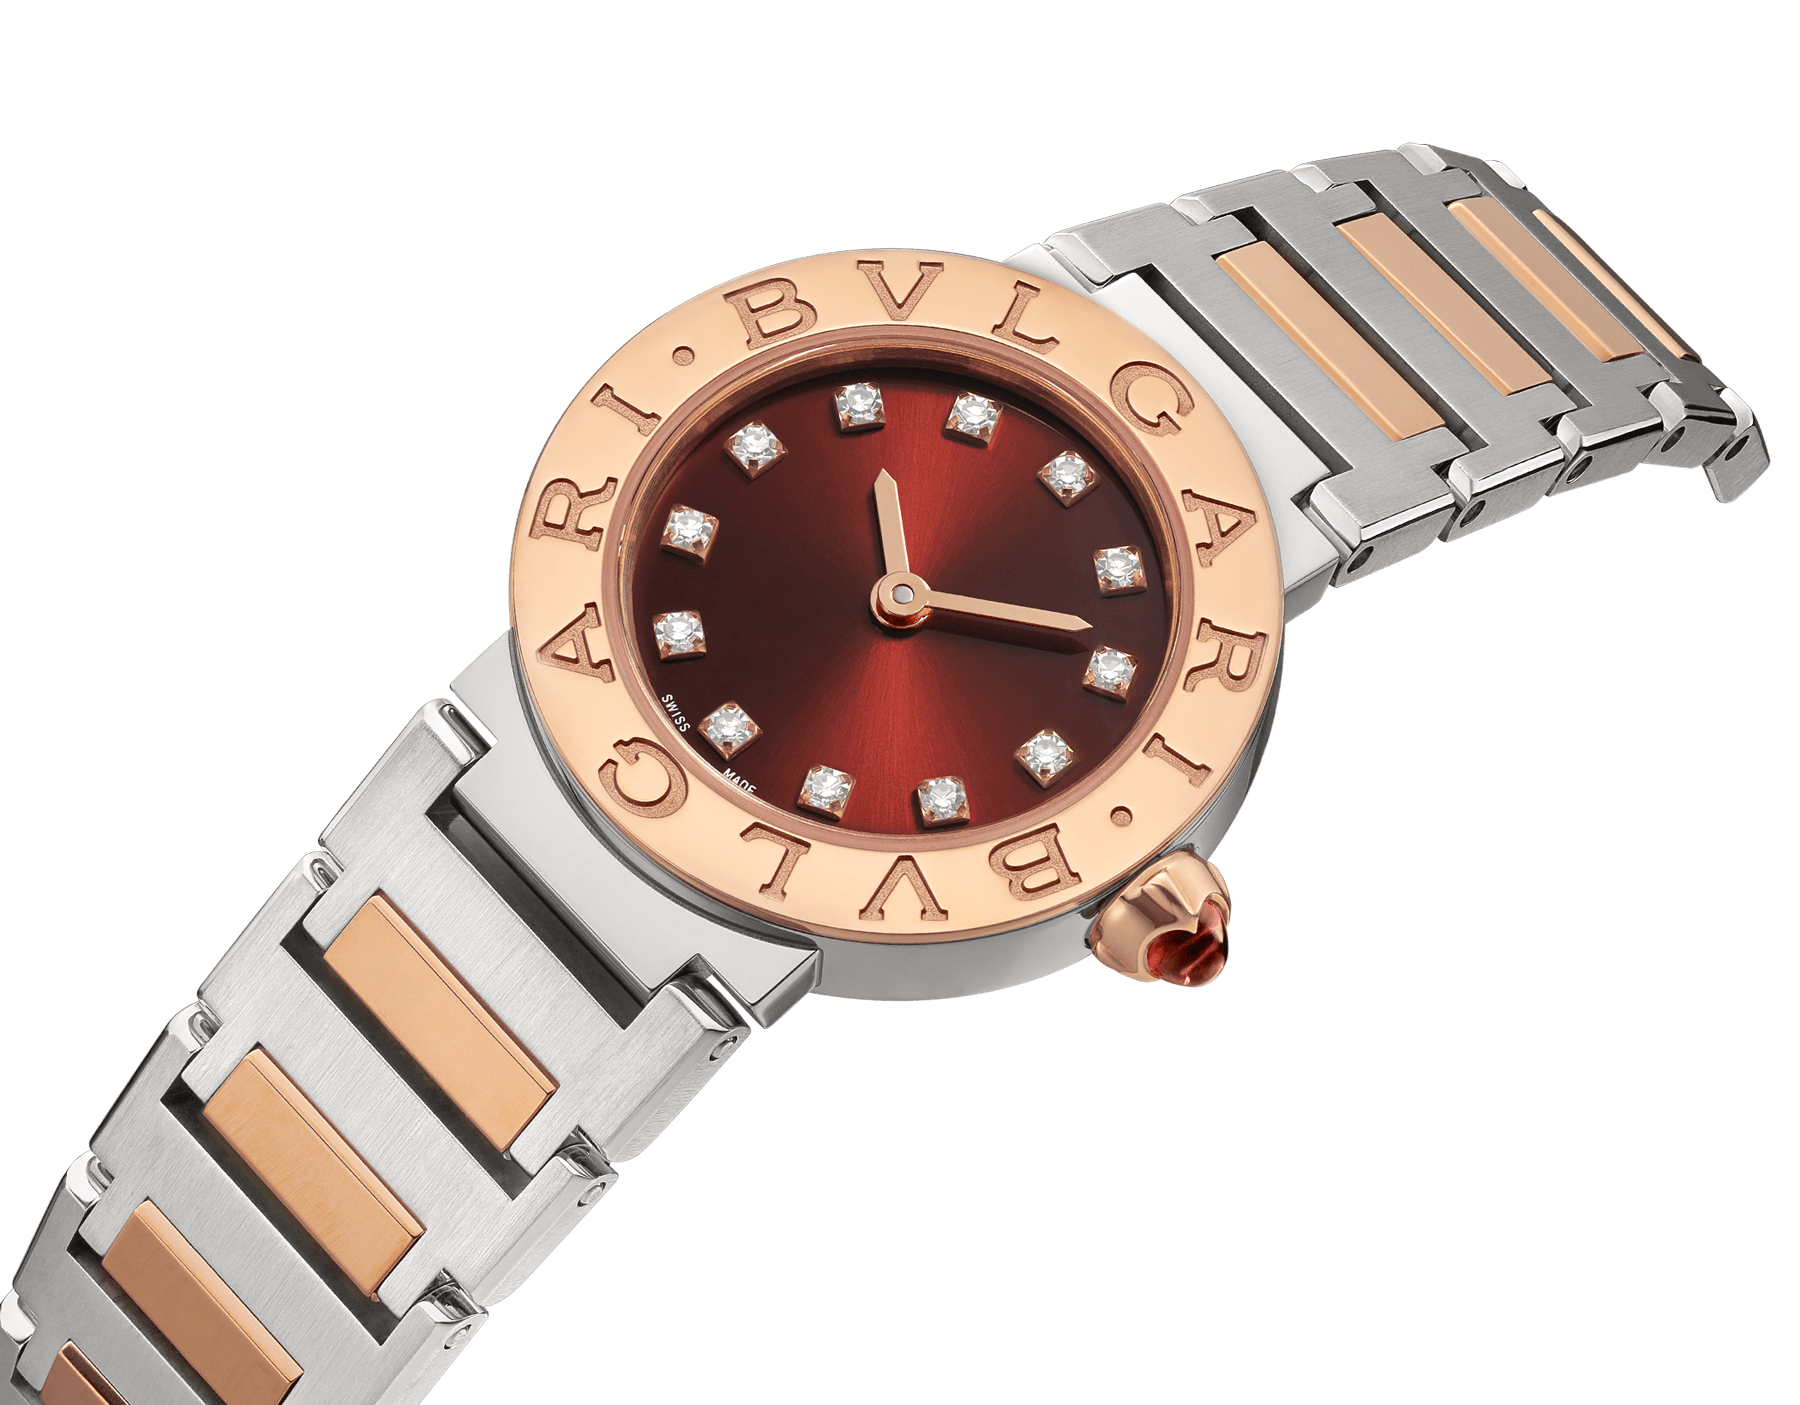 BVLGARI BVLGARI watch in 18 kt rose gold and stainless steel case and bracelet, 18 kt rose gold bezel engraved with double logo, brown satiné soleil lacquered dial and diamond indexes 103218 image 2